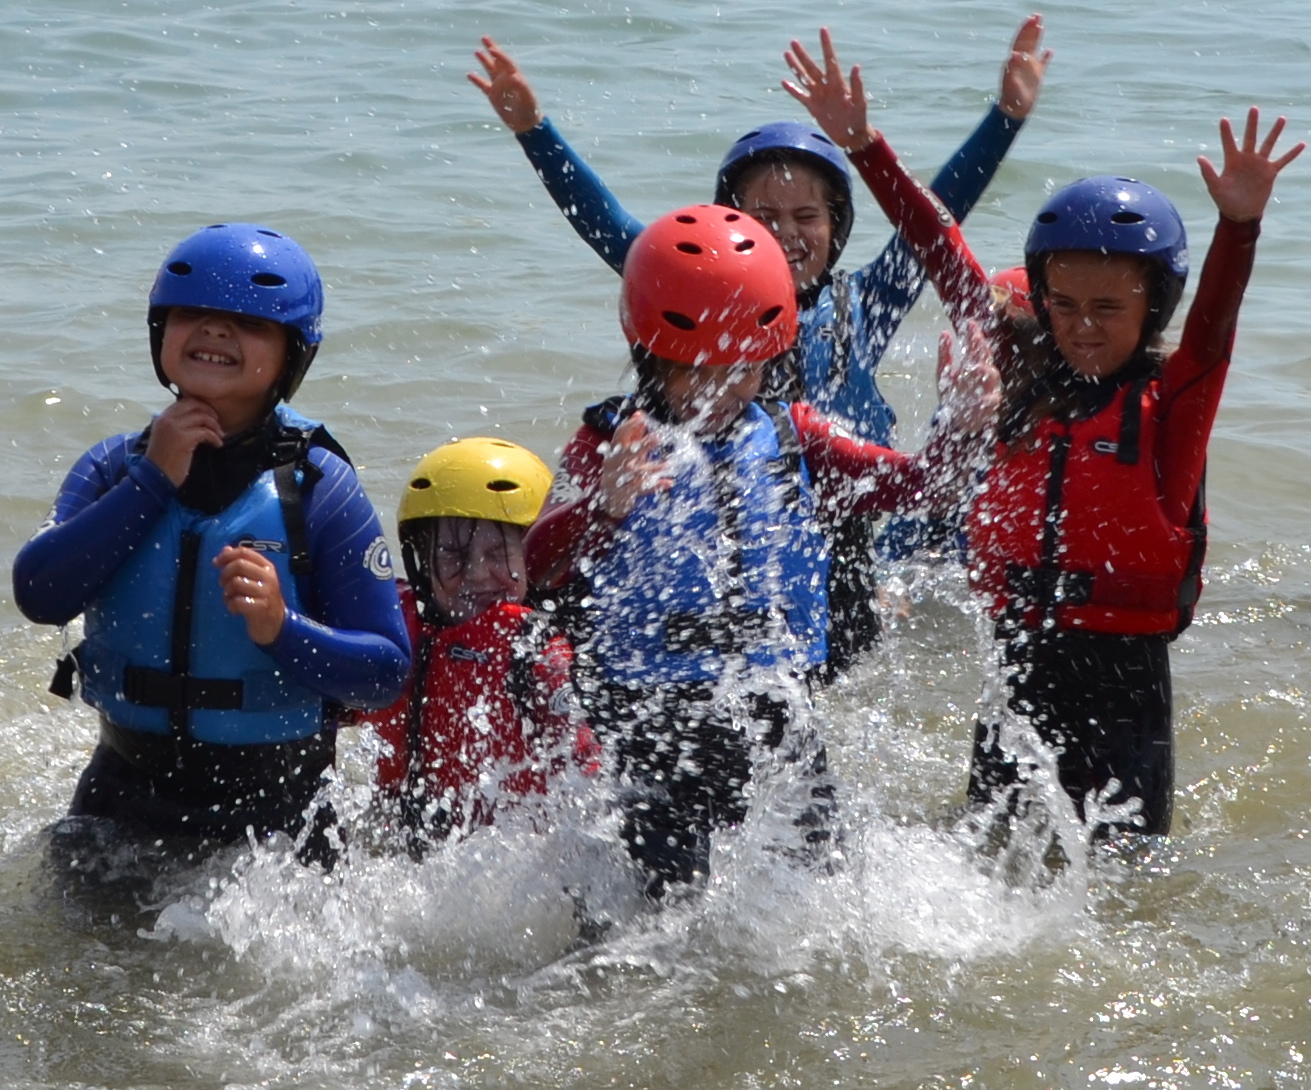 group water sport activities